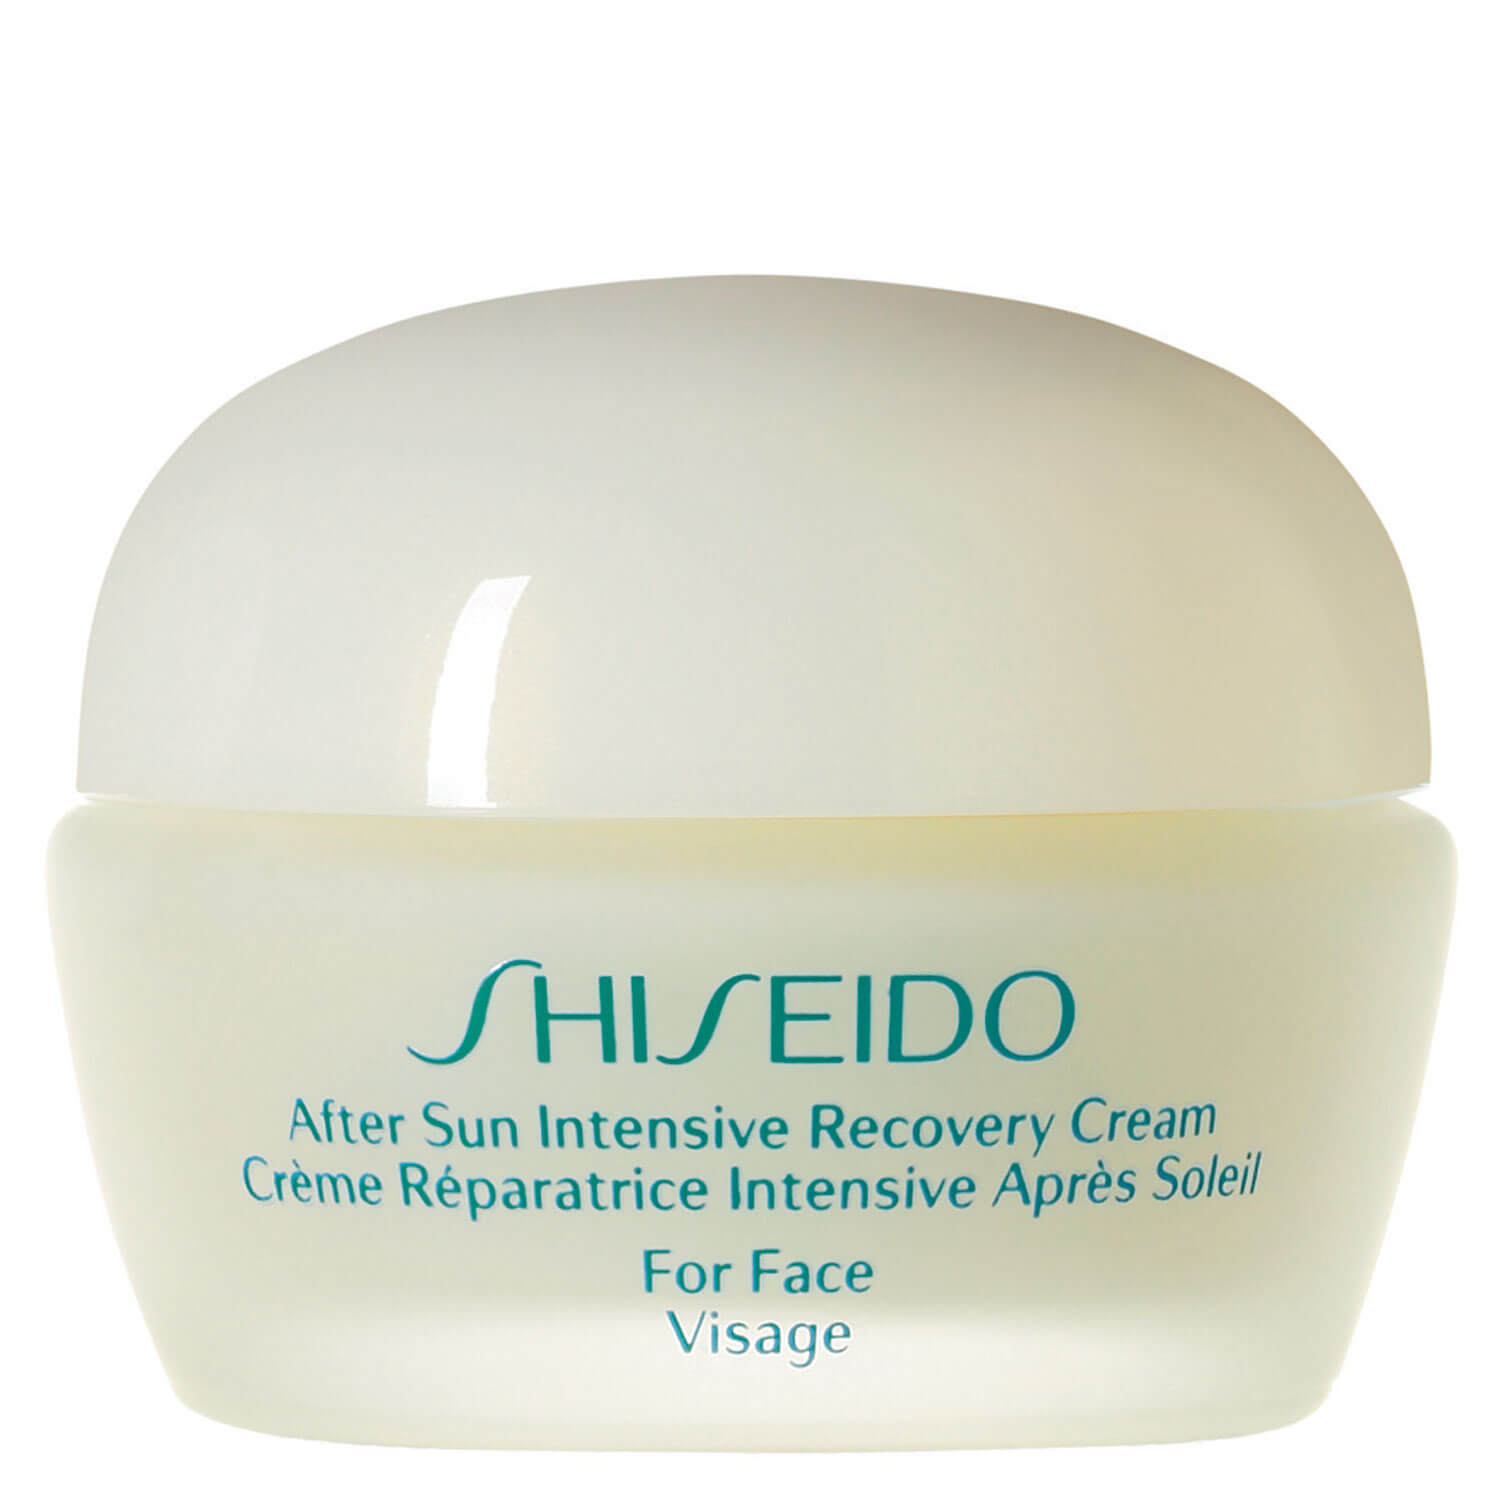 After Sun - Intensive Recovery Cream